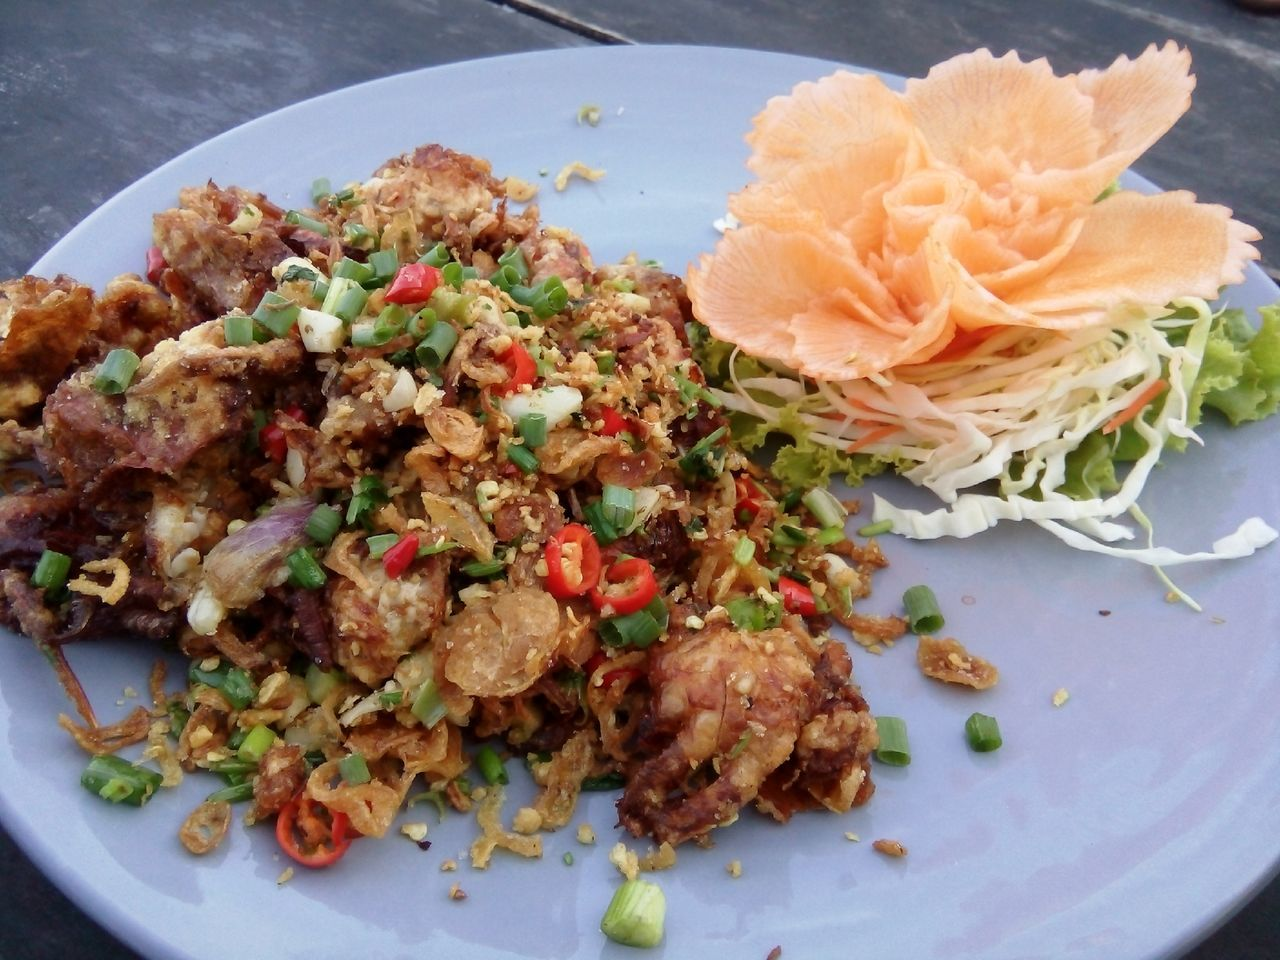 Soft Shell Crab Fried With Herbs Thai Food Food Enjoy Eating Meal Dinner Dinner Time Relaxing Hanging Out Crab